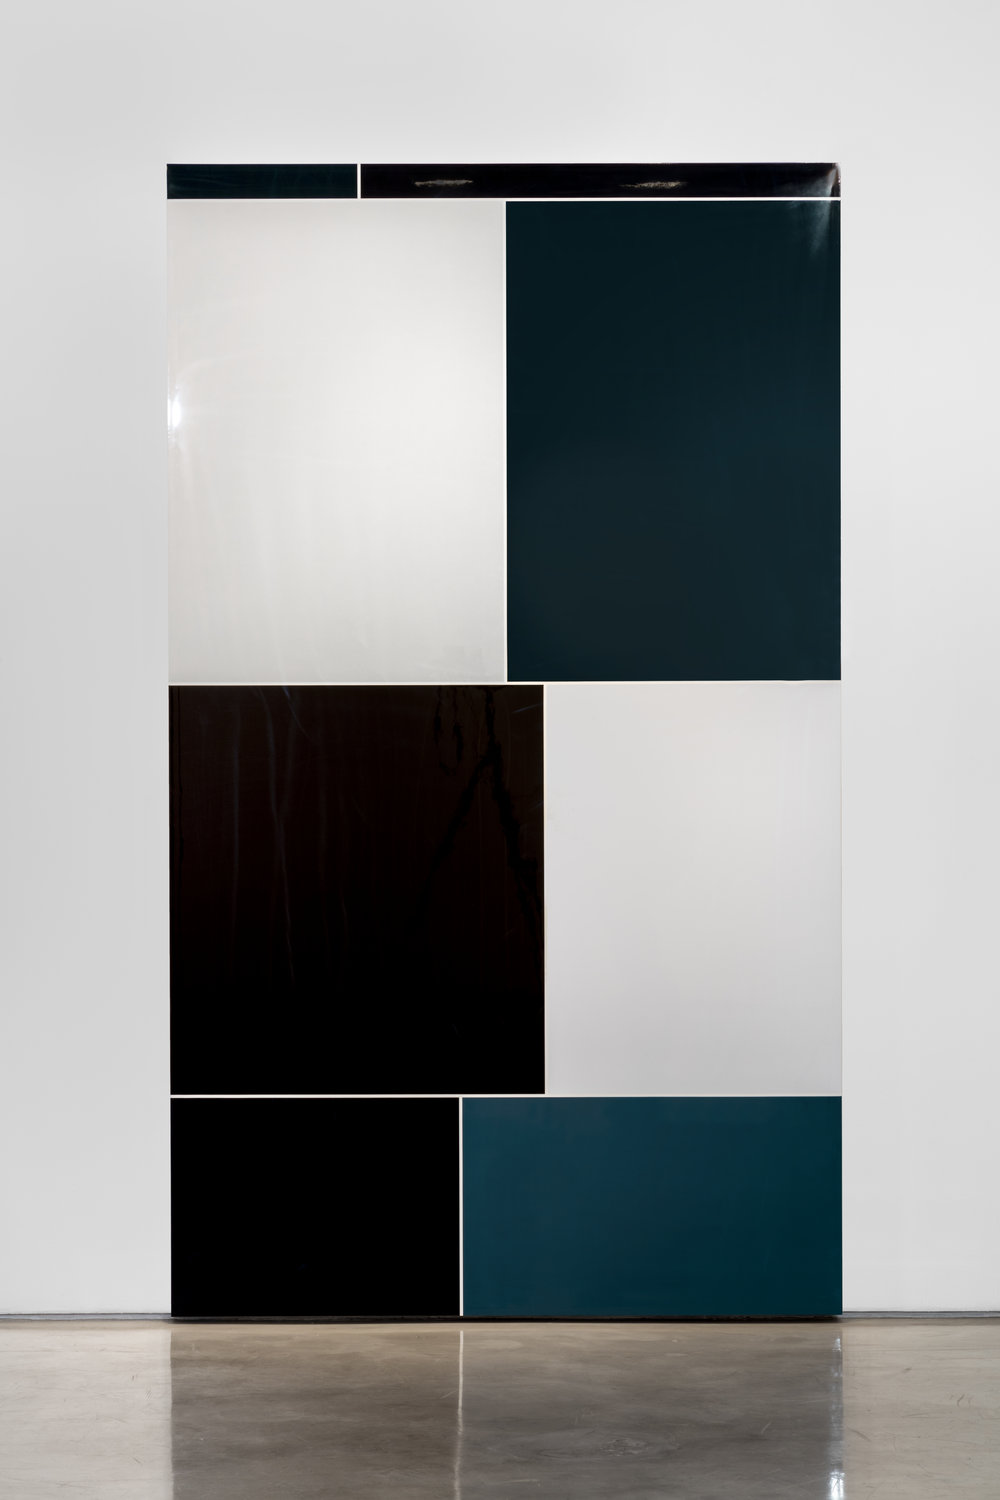 Image search: Sterotypes, Police Brutality, Polished urethane on gessoed canvas, 2015